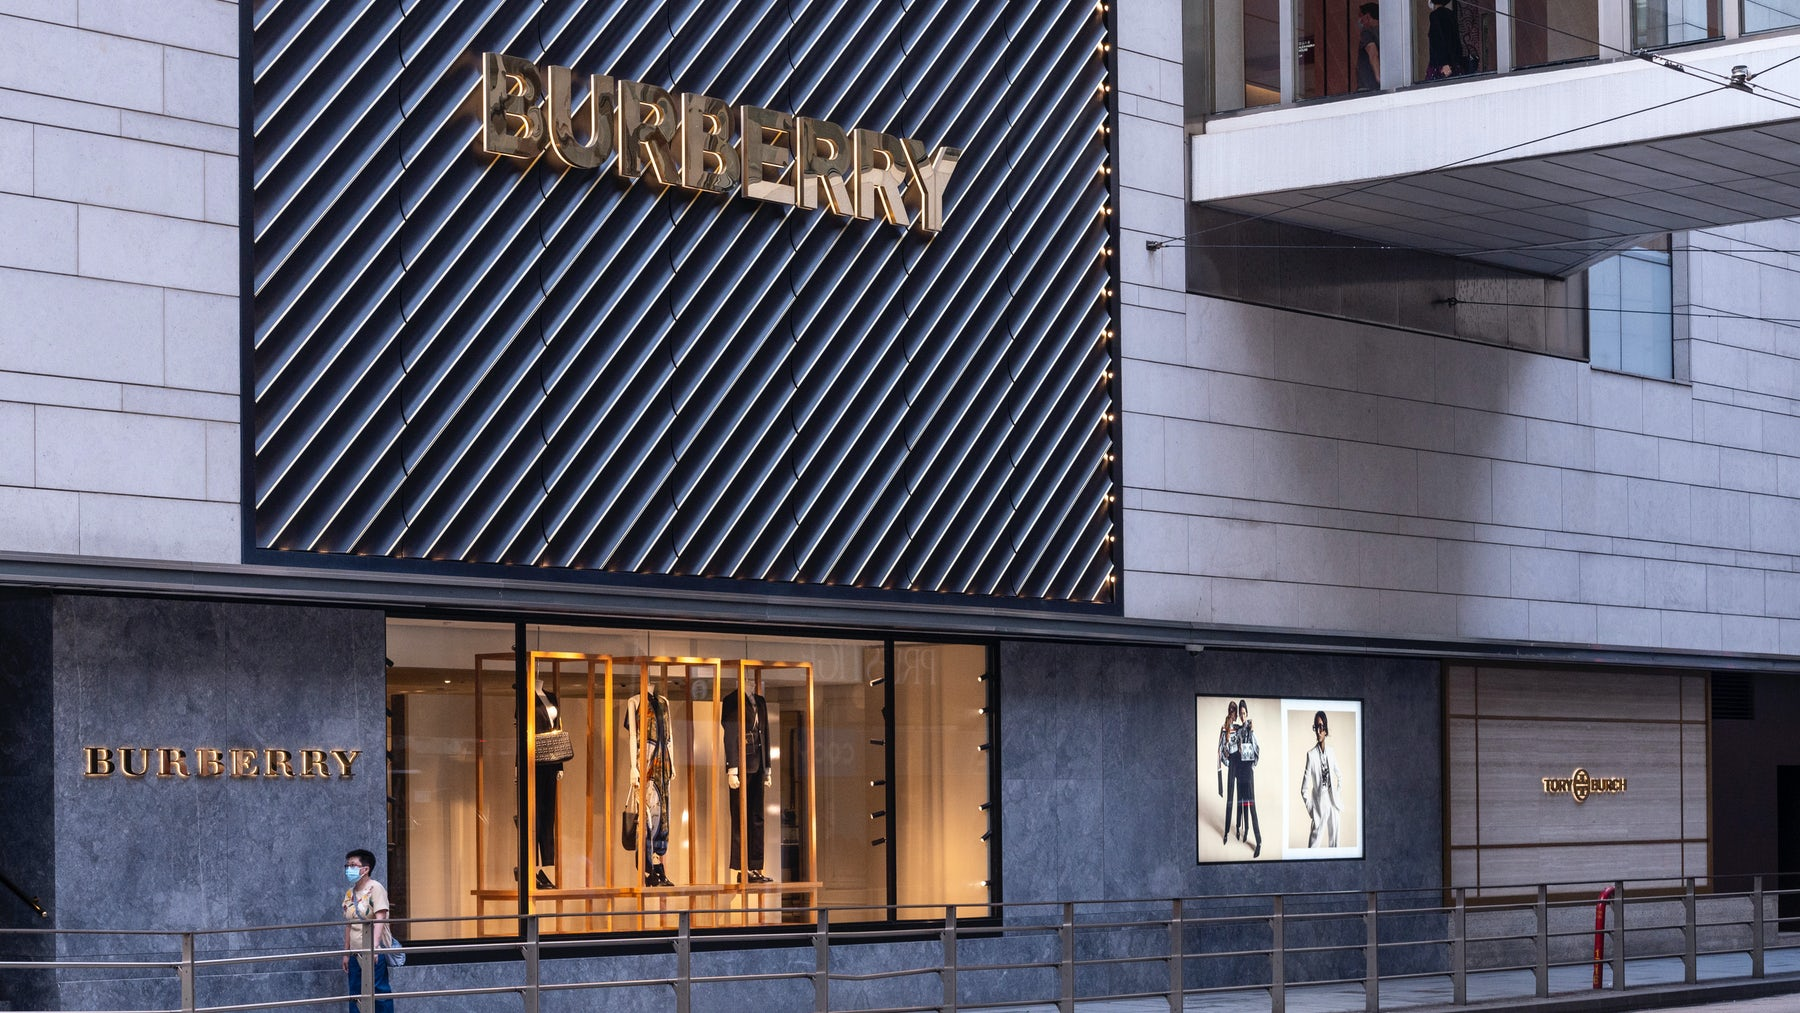 Burberry store in Hong Kong. Getty Images.